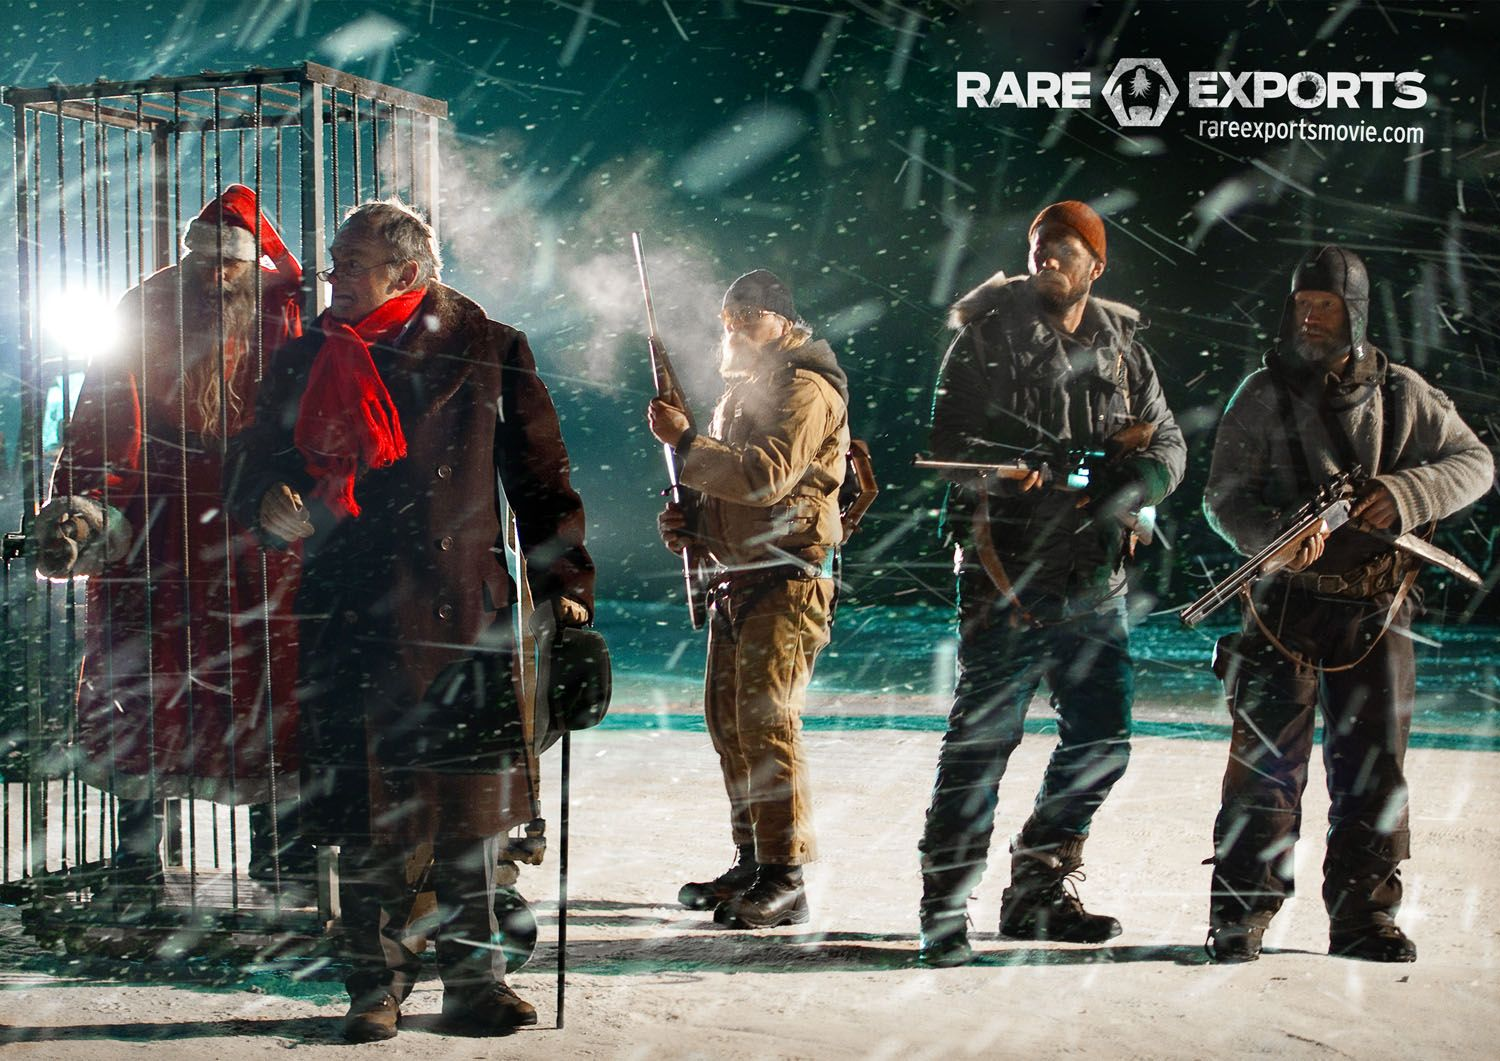 17. Rare Exports: A Christmas Tale (2010)